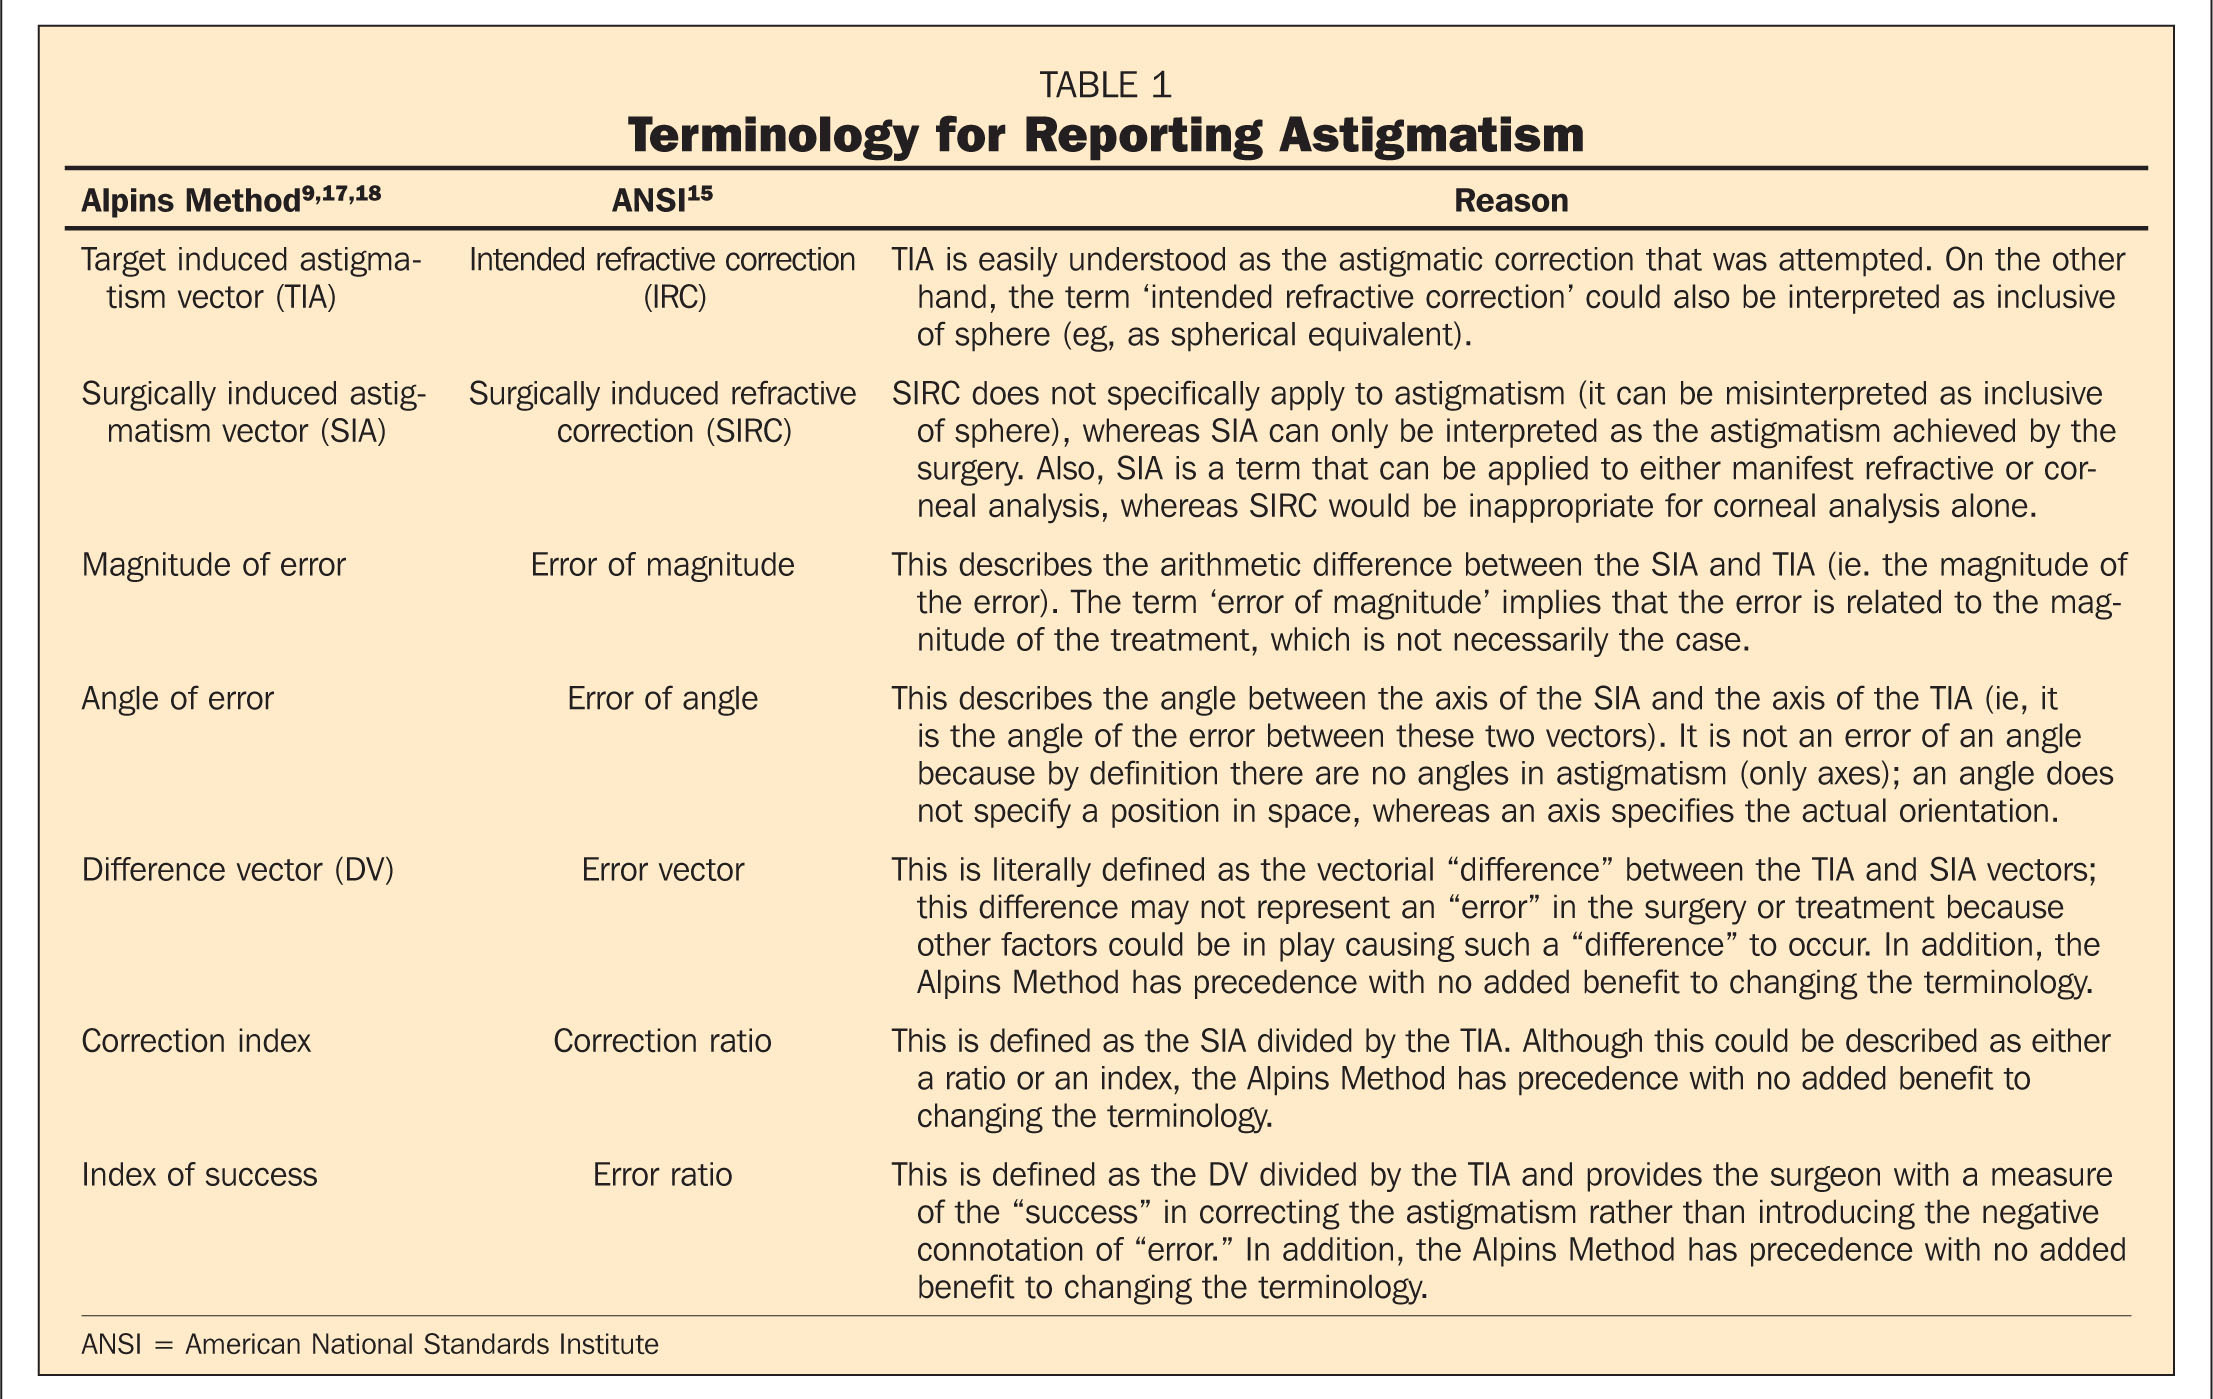 Terminology for Reporting Astigmatism